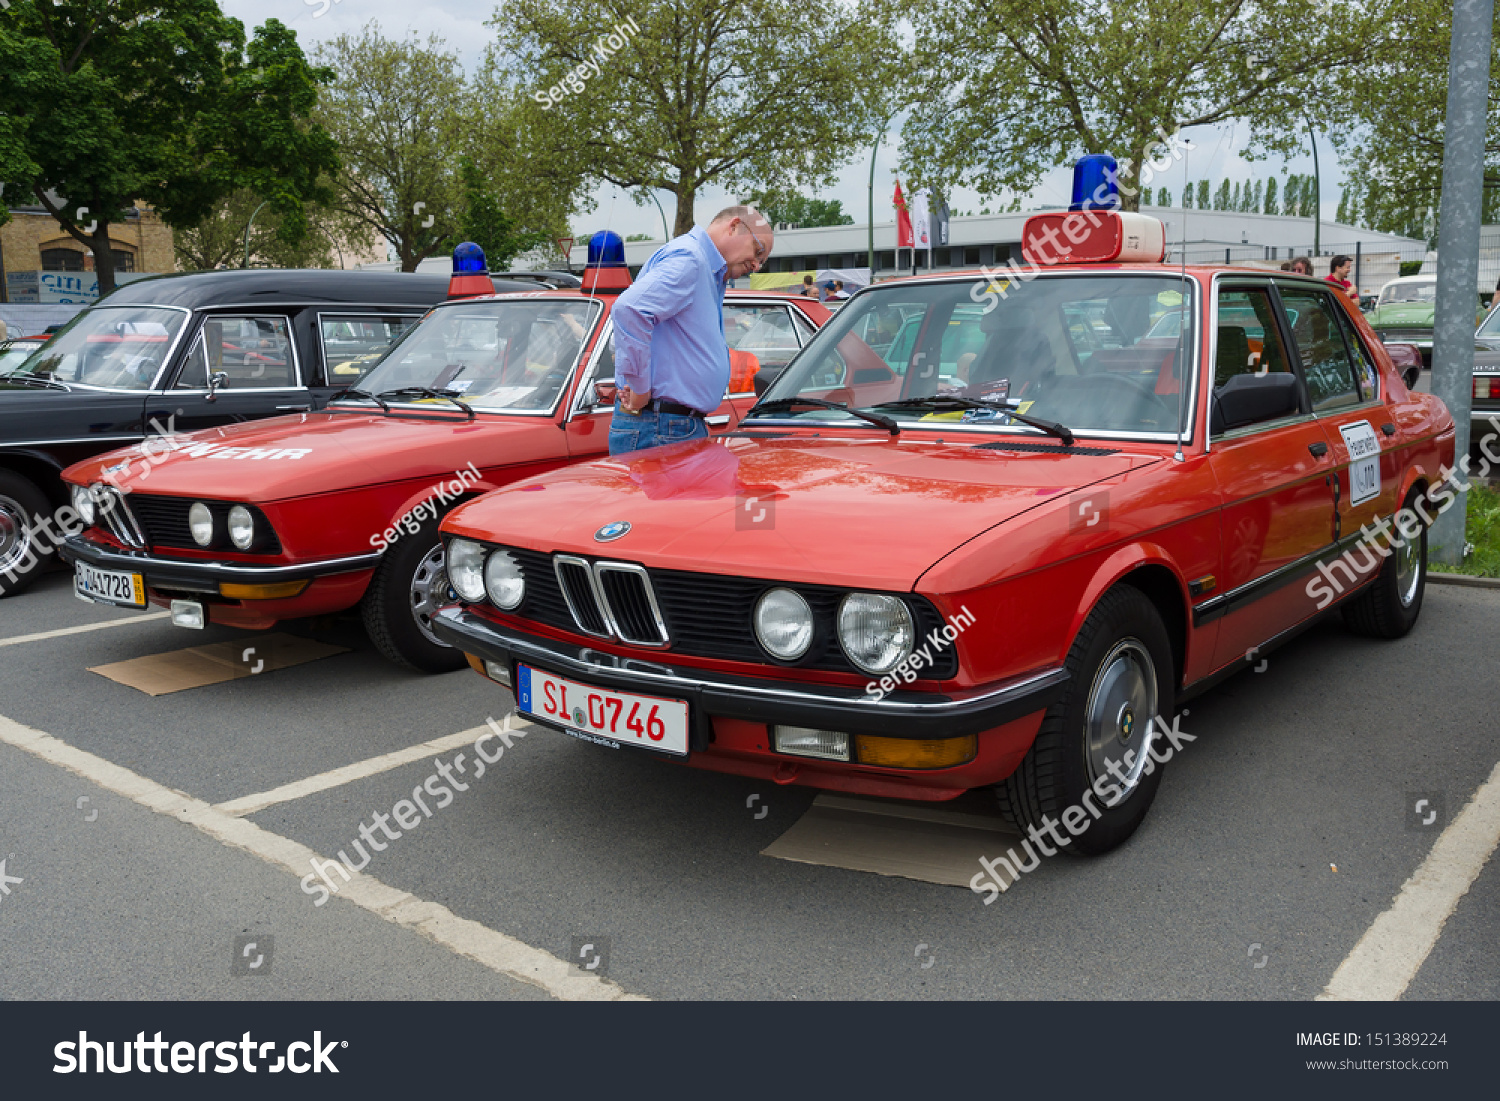 Berlin May 11 Cars Rescue Bmw Stock Photo Edit Now 151389224 5 Series E28 E12 In The Background